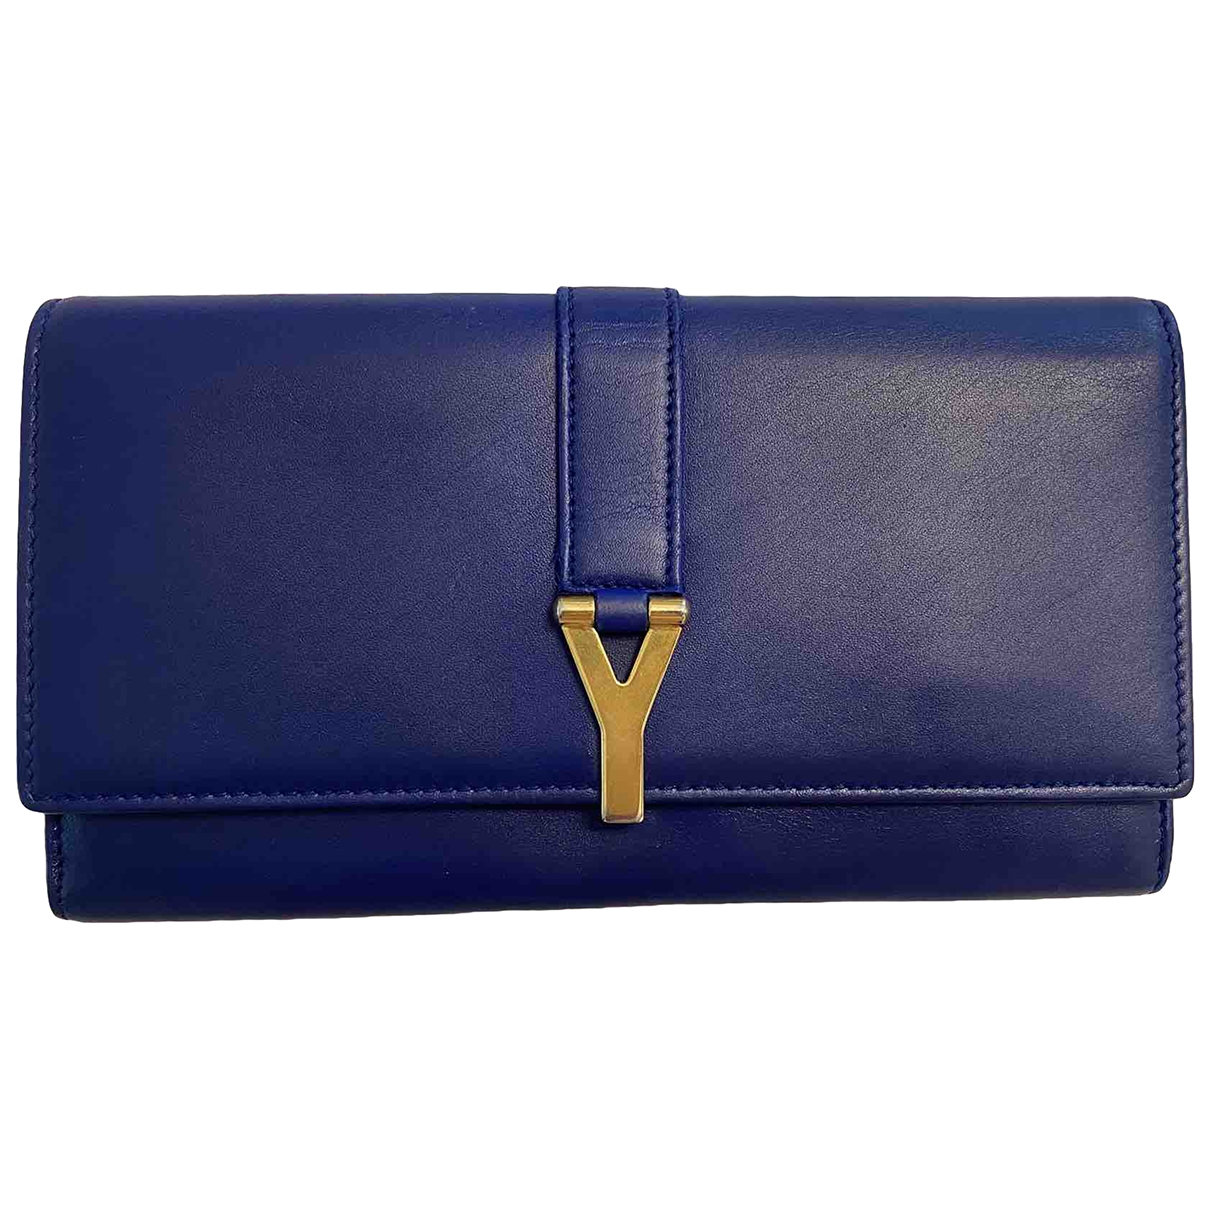 Saint Laurent Chyc Blue Leather wallet for Women \N